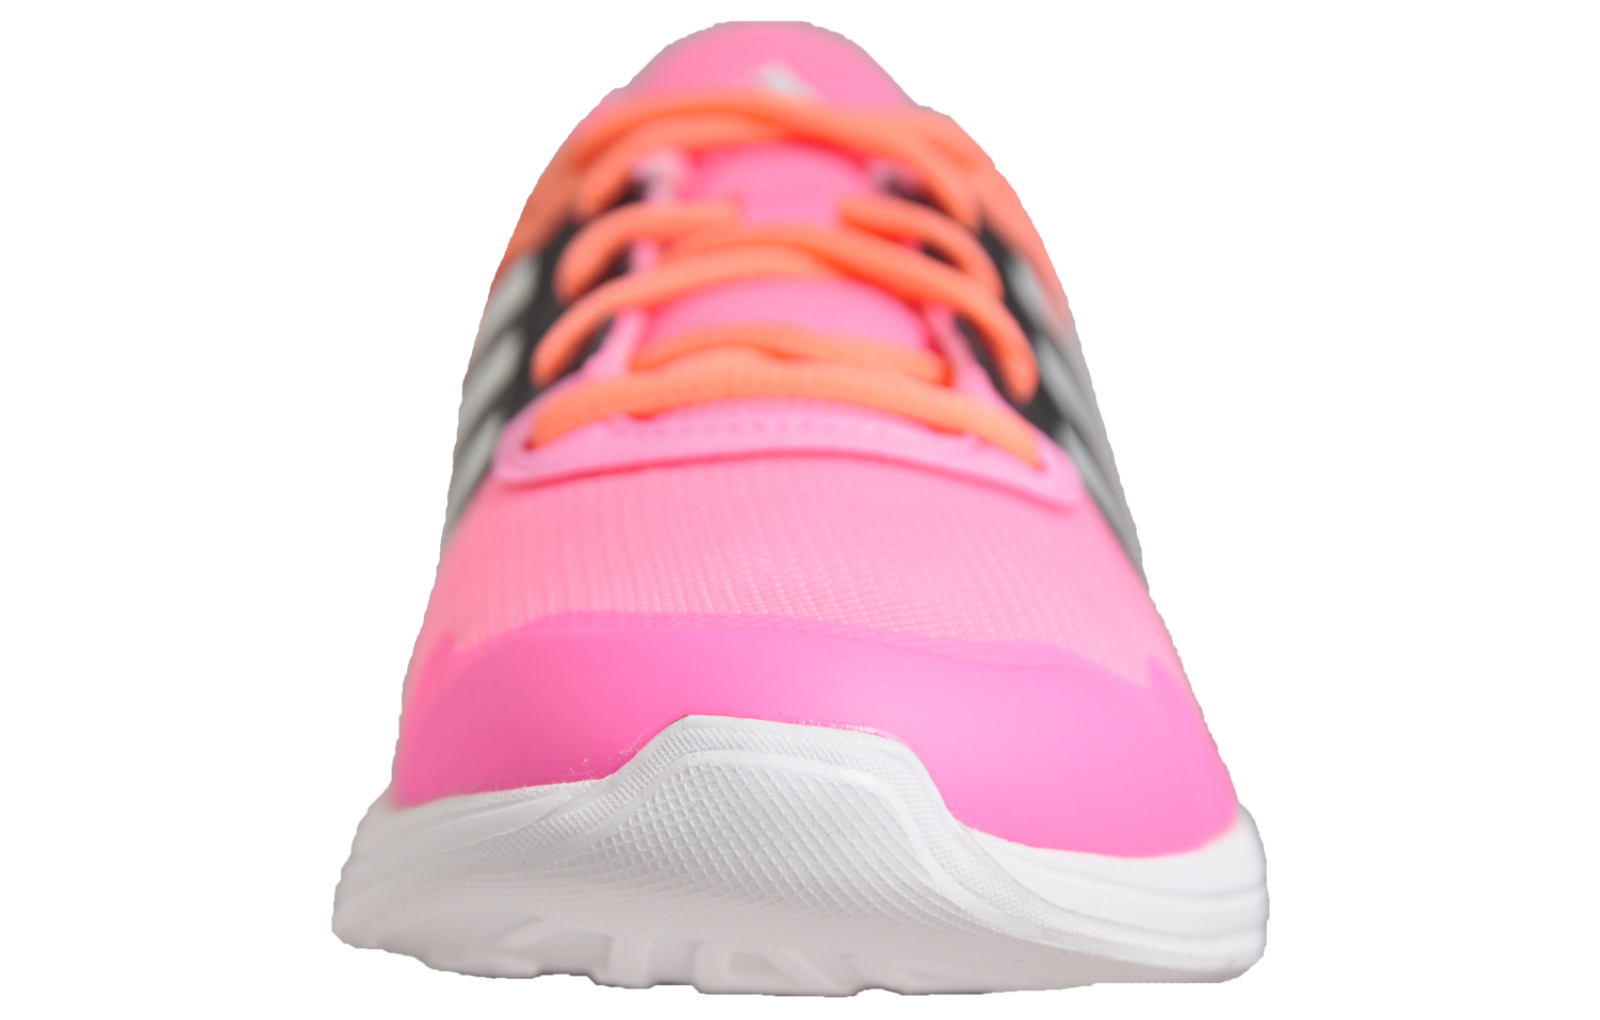 lowest price 0f933 6eec3 Adidas Essential Fun 2 Womens Ladies Running Gym Fitnee Workout Trainers  Pink